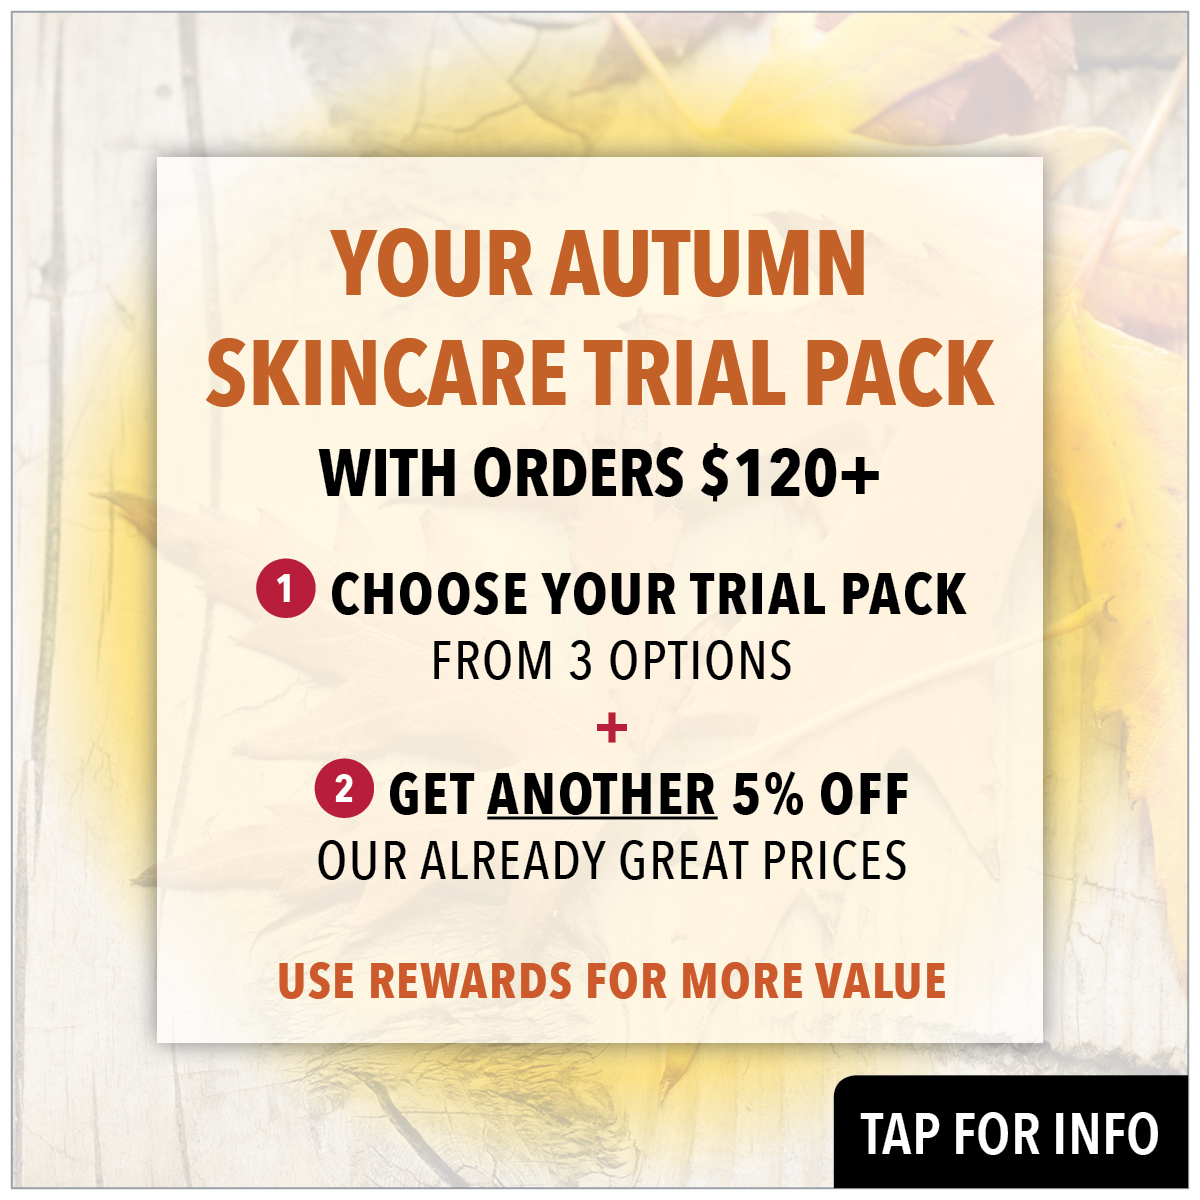 choose your autumn skincare trial pack from prodermal